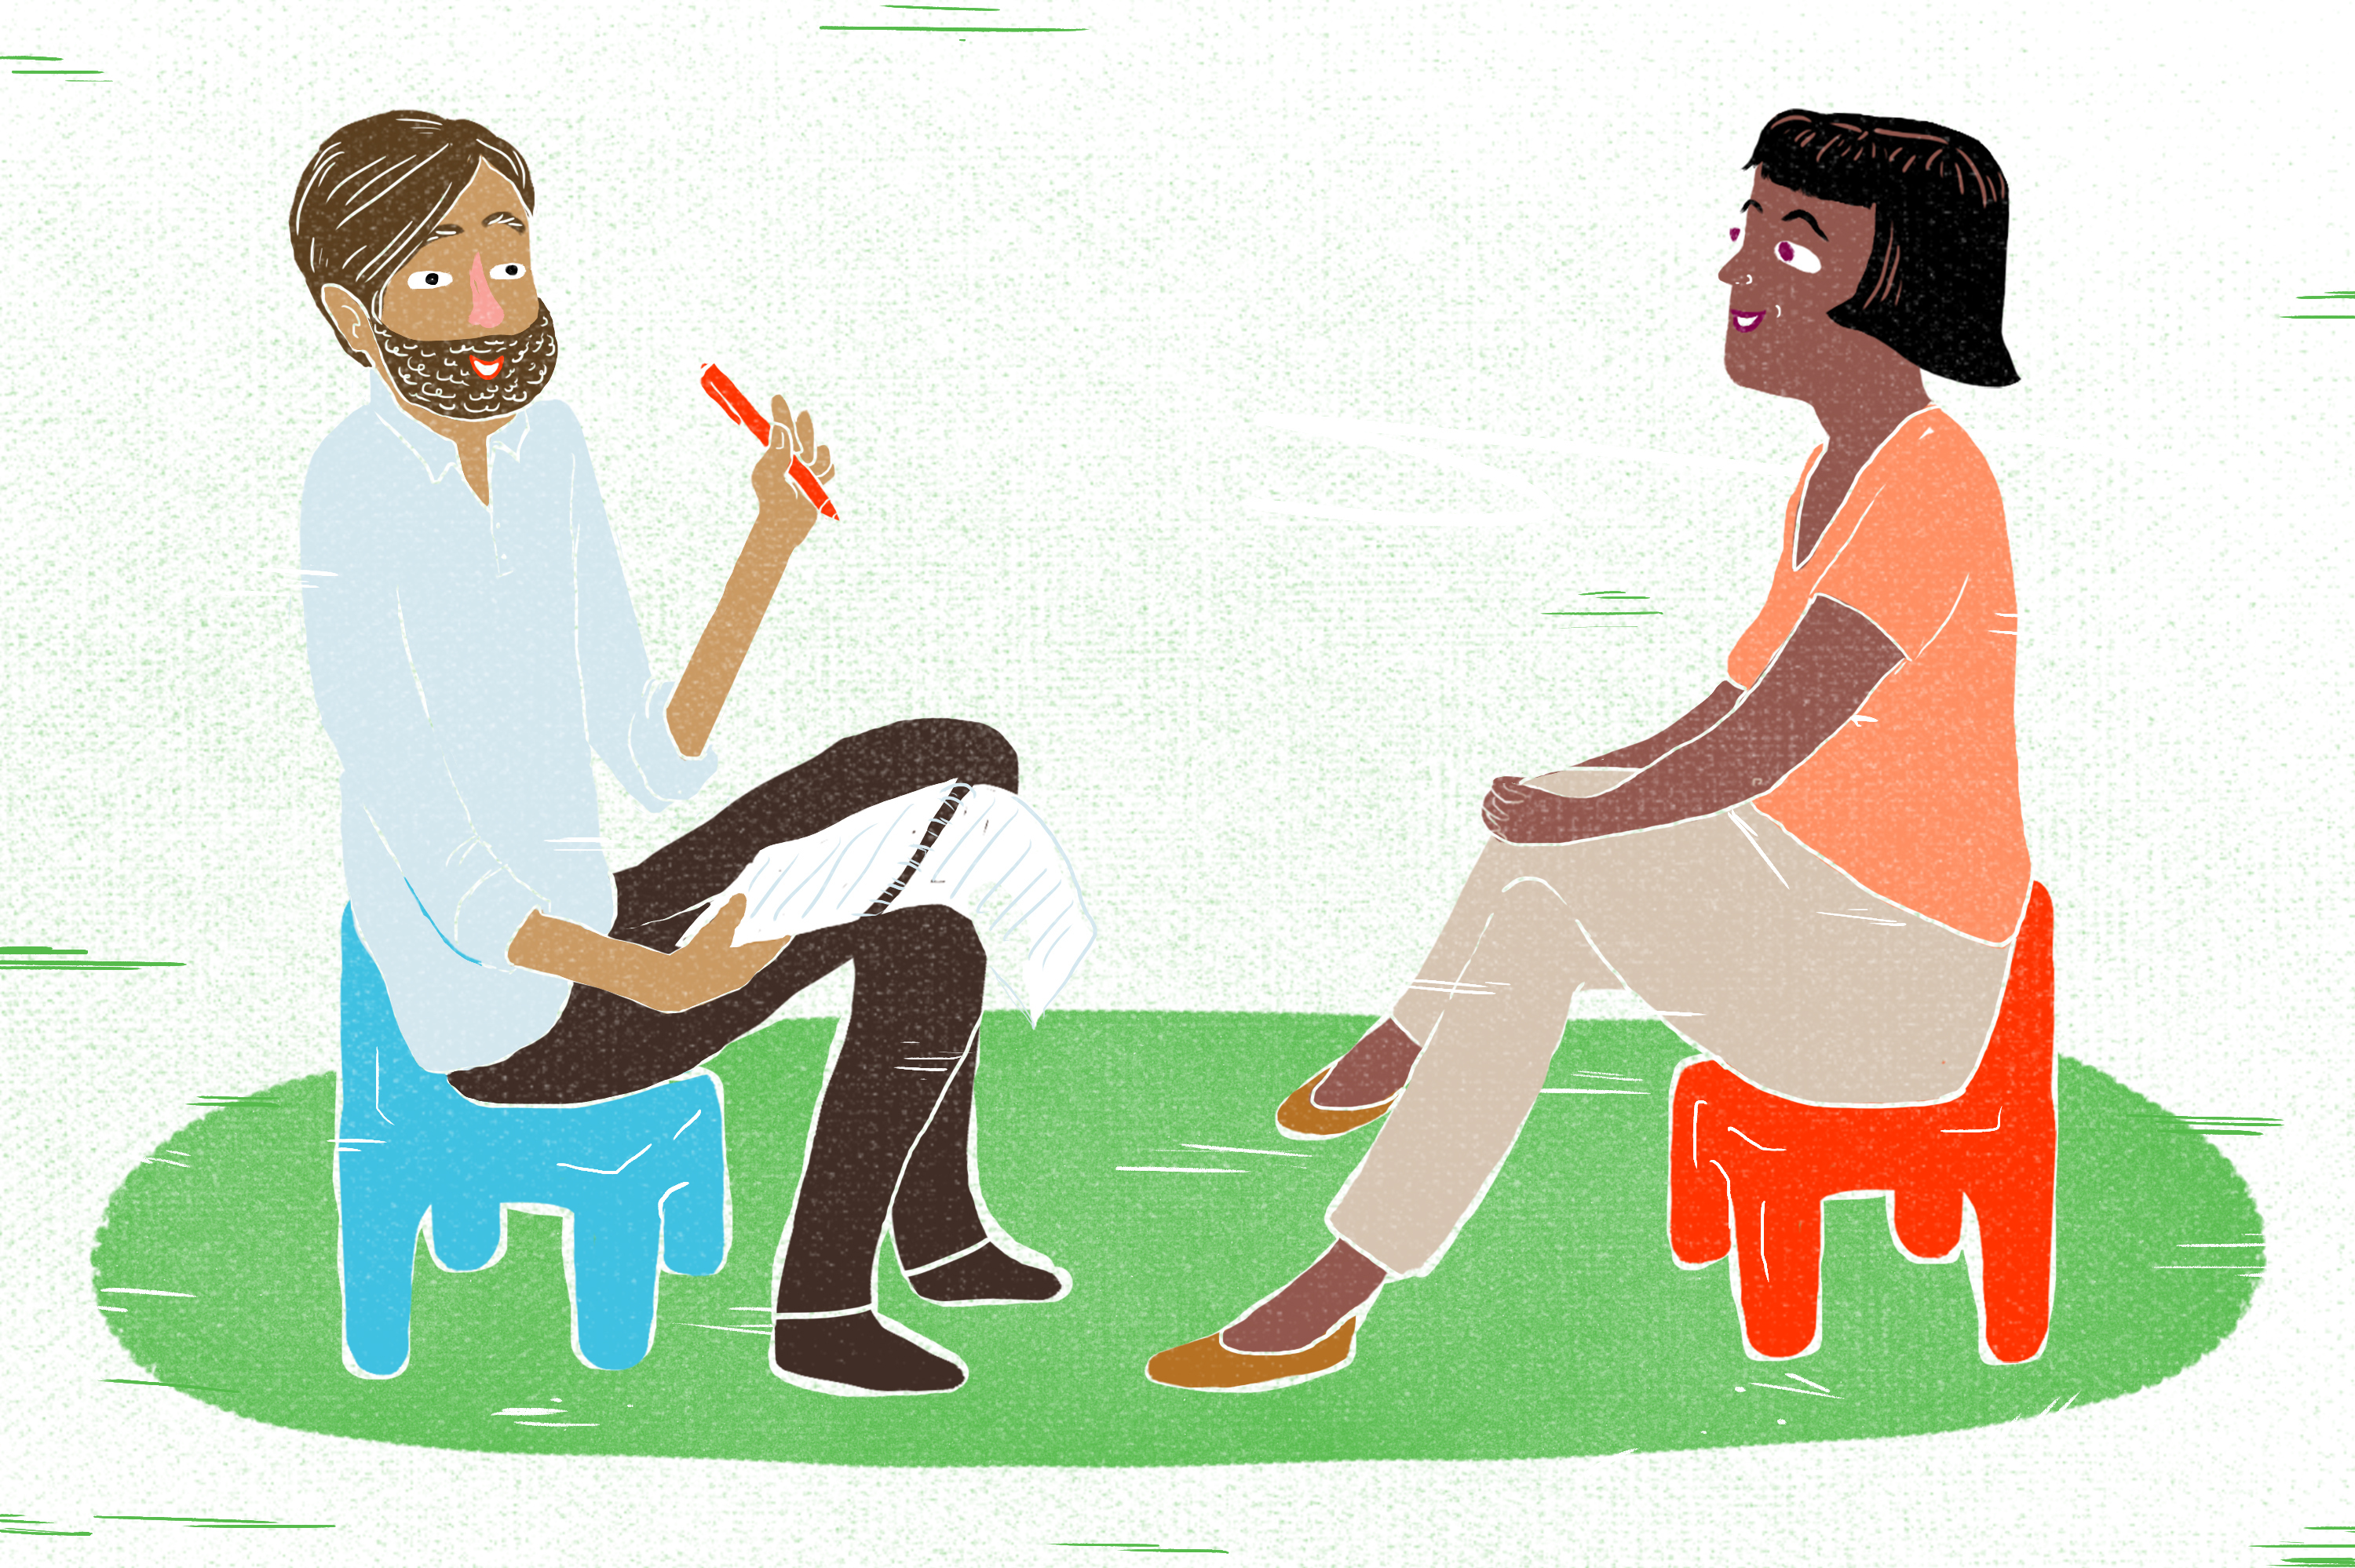 How To Make The Most Of Your 10 Minutes With Teacher